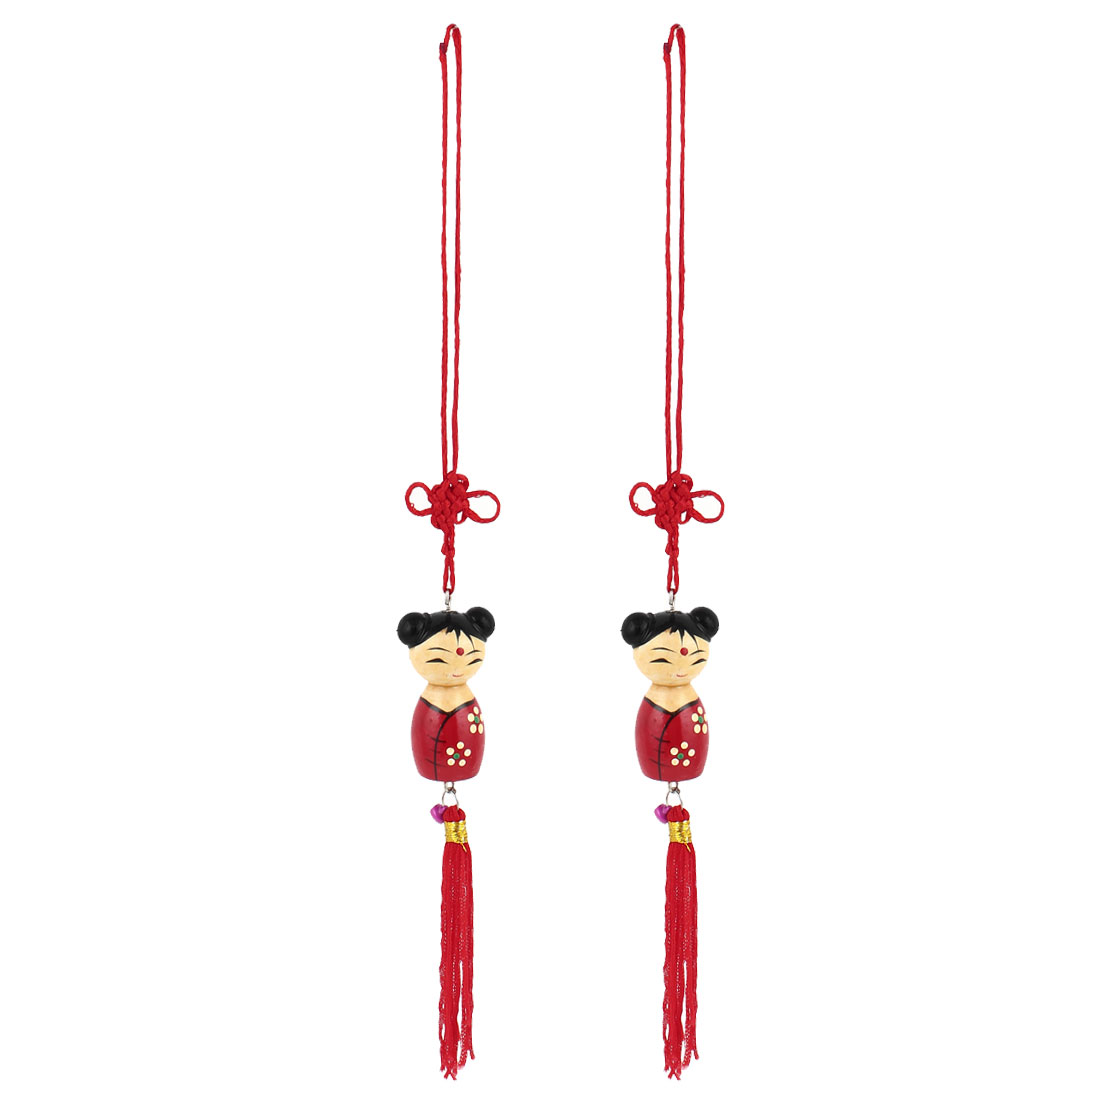 Chinese Folk Art Knot Tassels Decor Girl Pendant Hanging Ornament Red